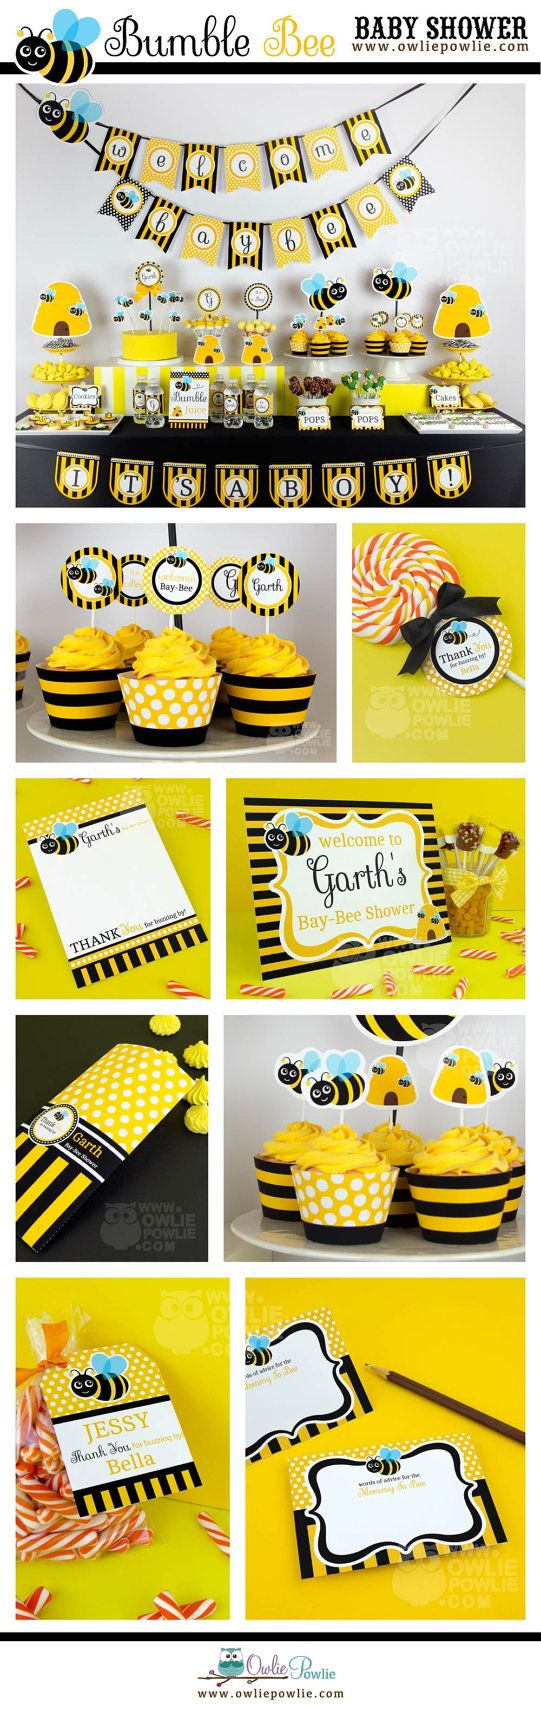 Bumble bee baby shower baby ideas for kate pinterest bumble bumble bee baby shower baby ideas for kate pinterest bumble bees and birthdays solutioingenieria Choice Image